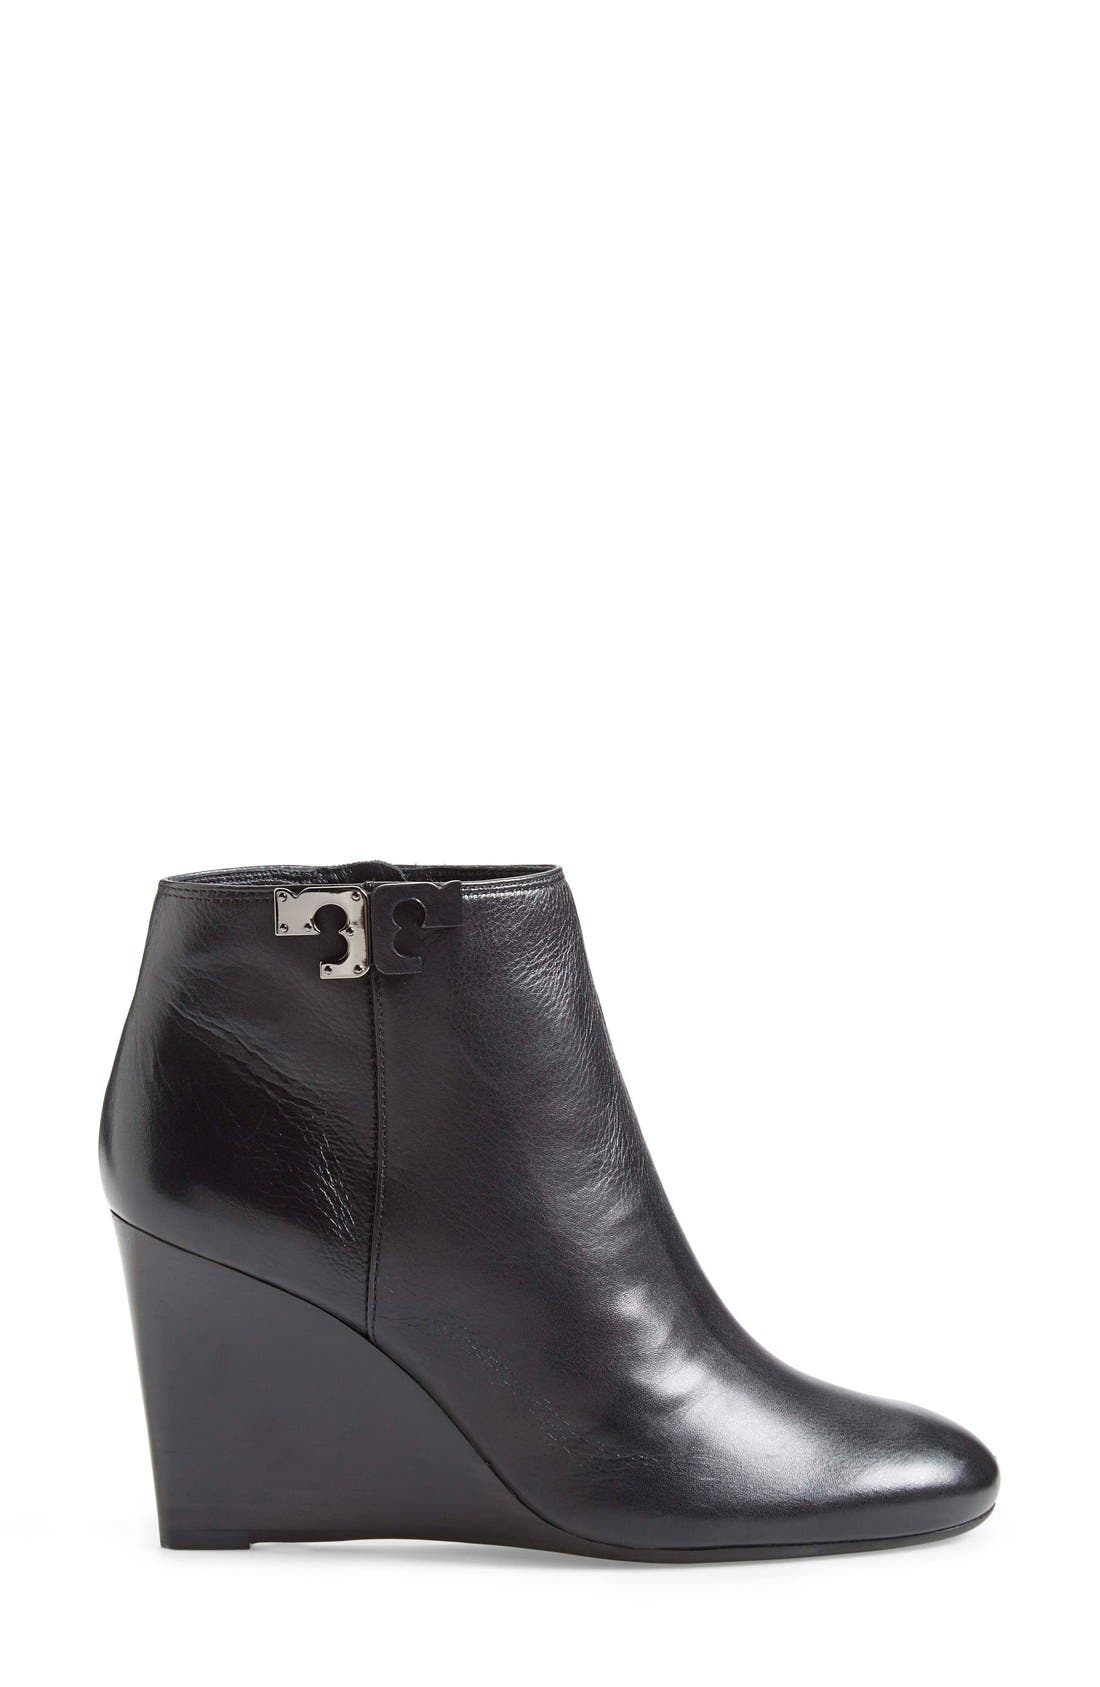 'Lowell' Wedge Bootie,                             Alternate thumbnail 4, color,                             Black Leather